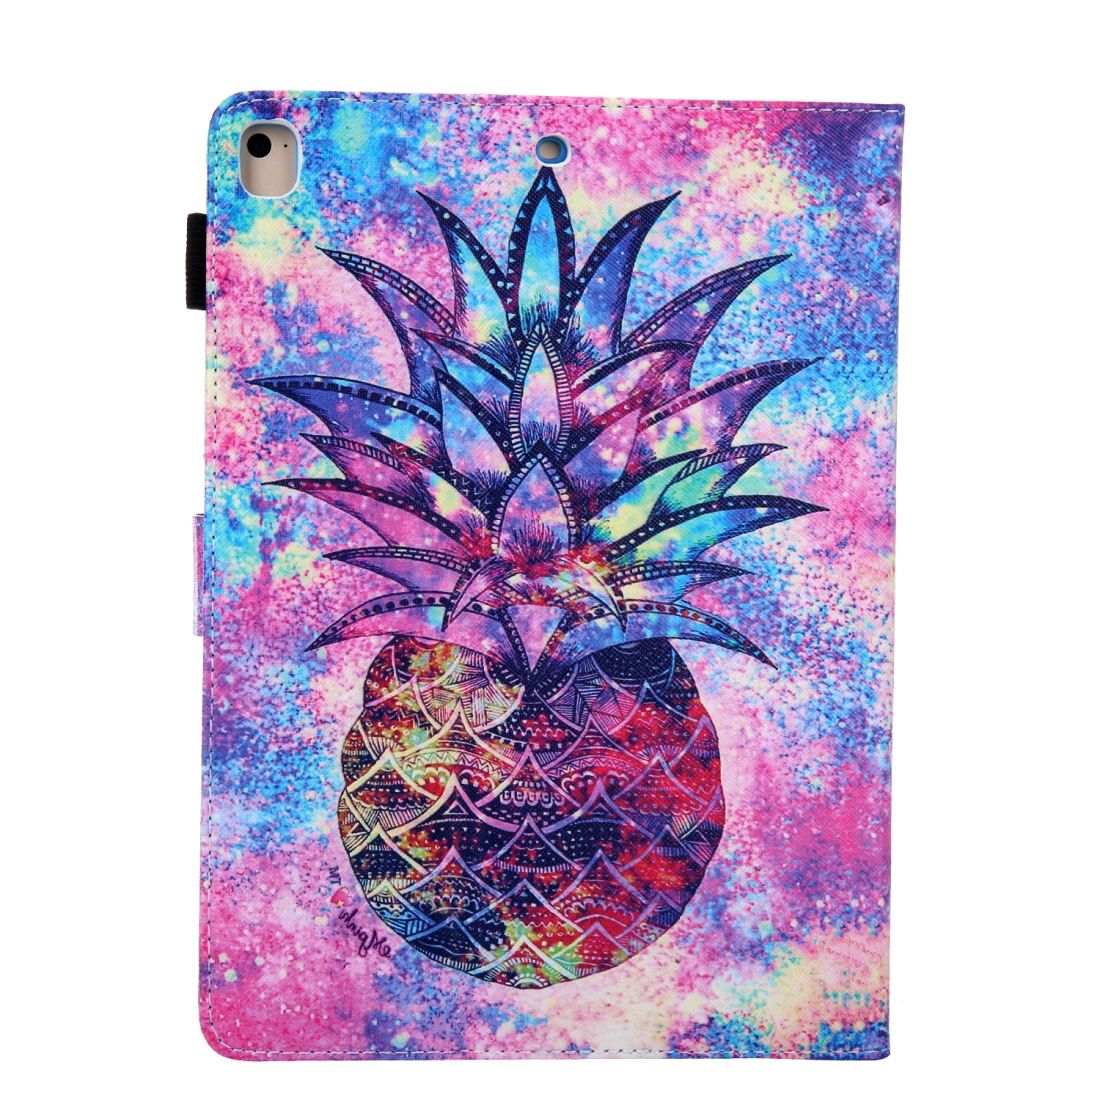 3D Leather Case with Sleeve  iPad 9.7 Case (Pineapple)